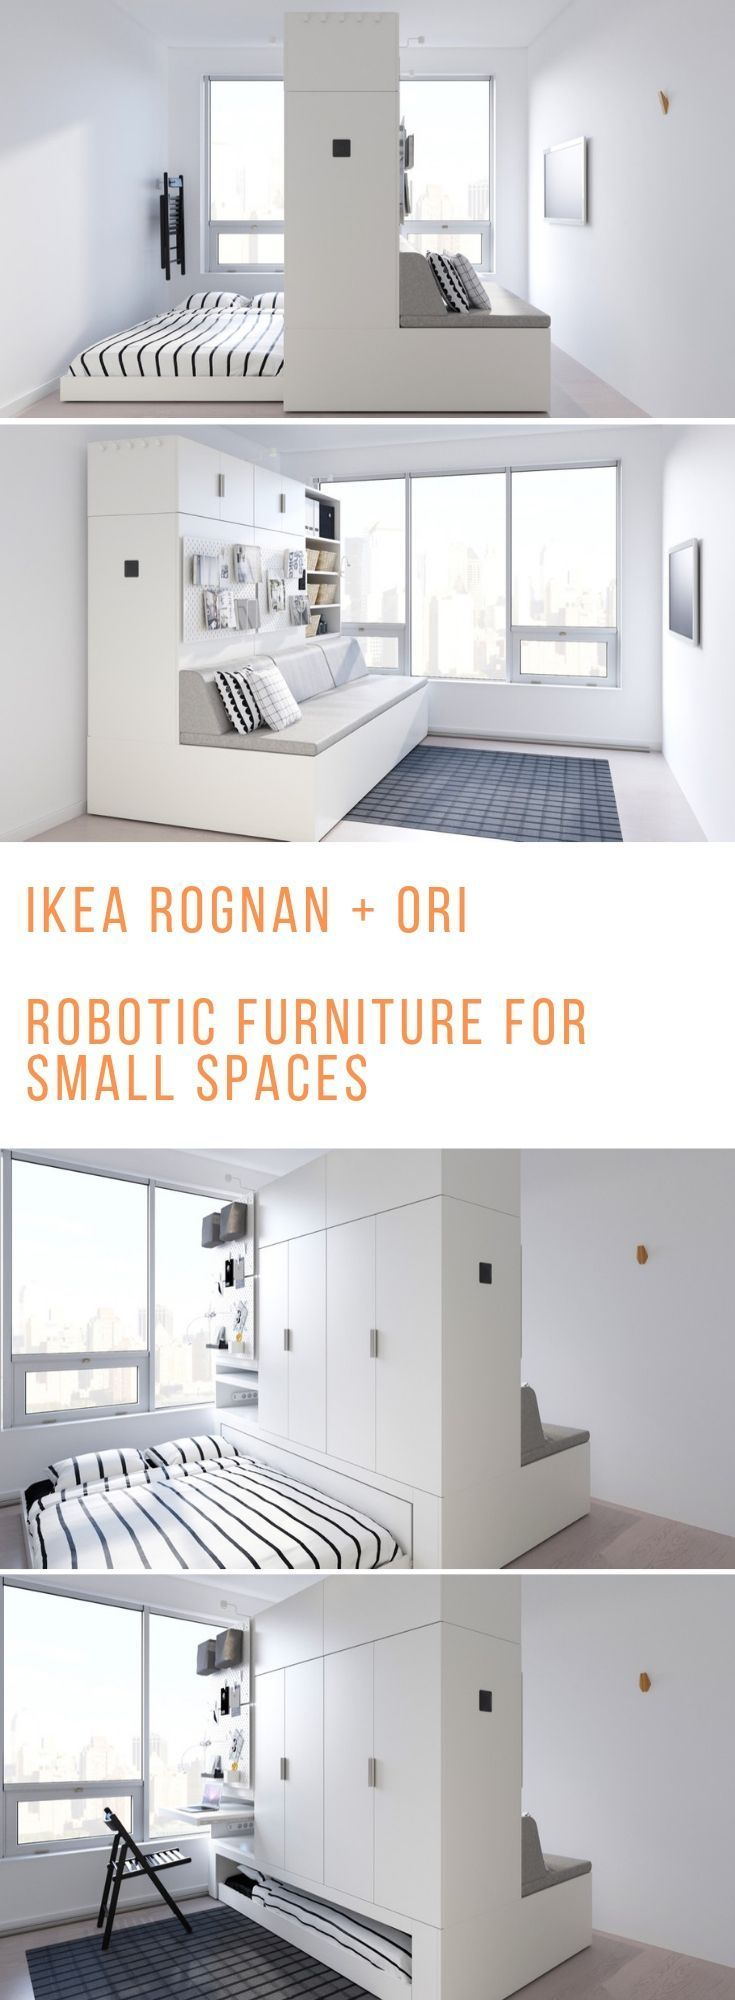 Robotic Furniture: IKEA's new big thing for tiny spaces #tinyhome